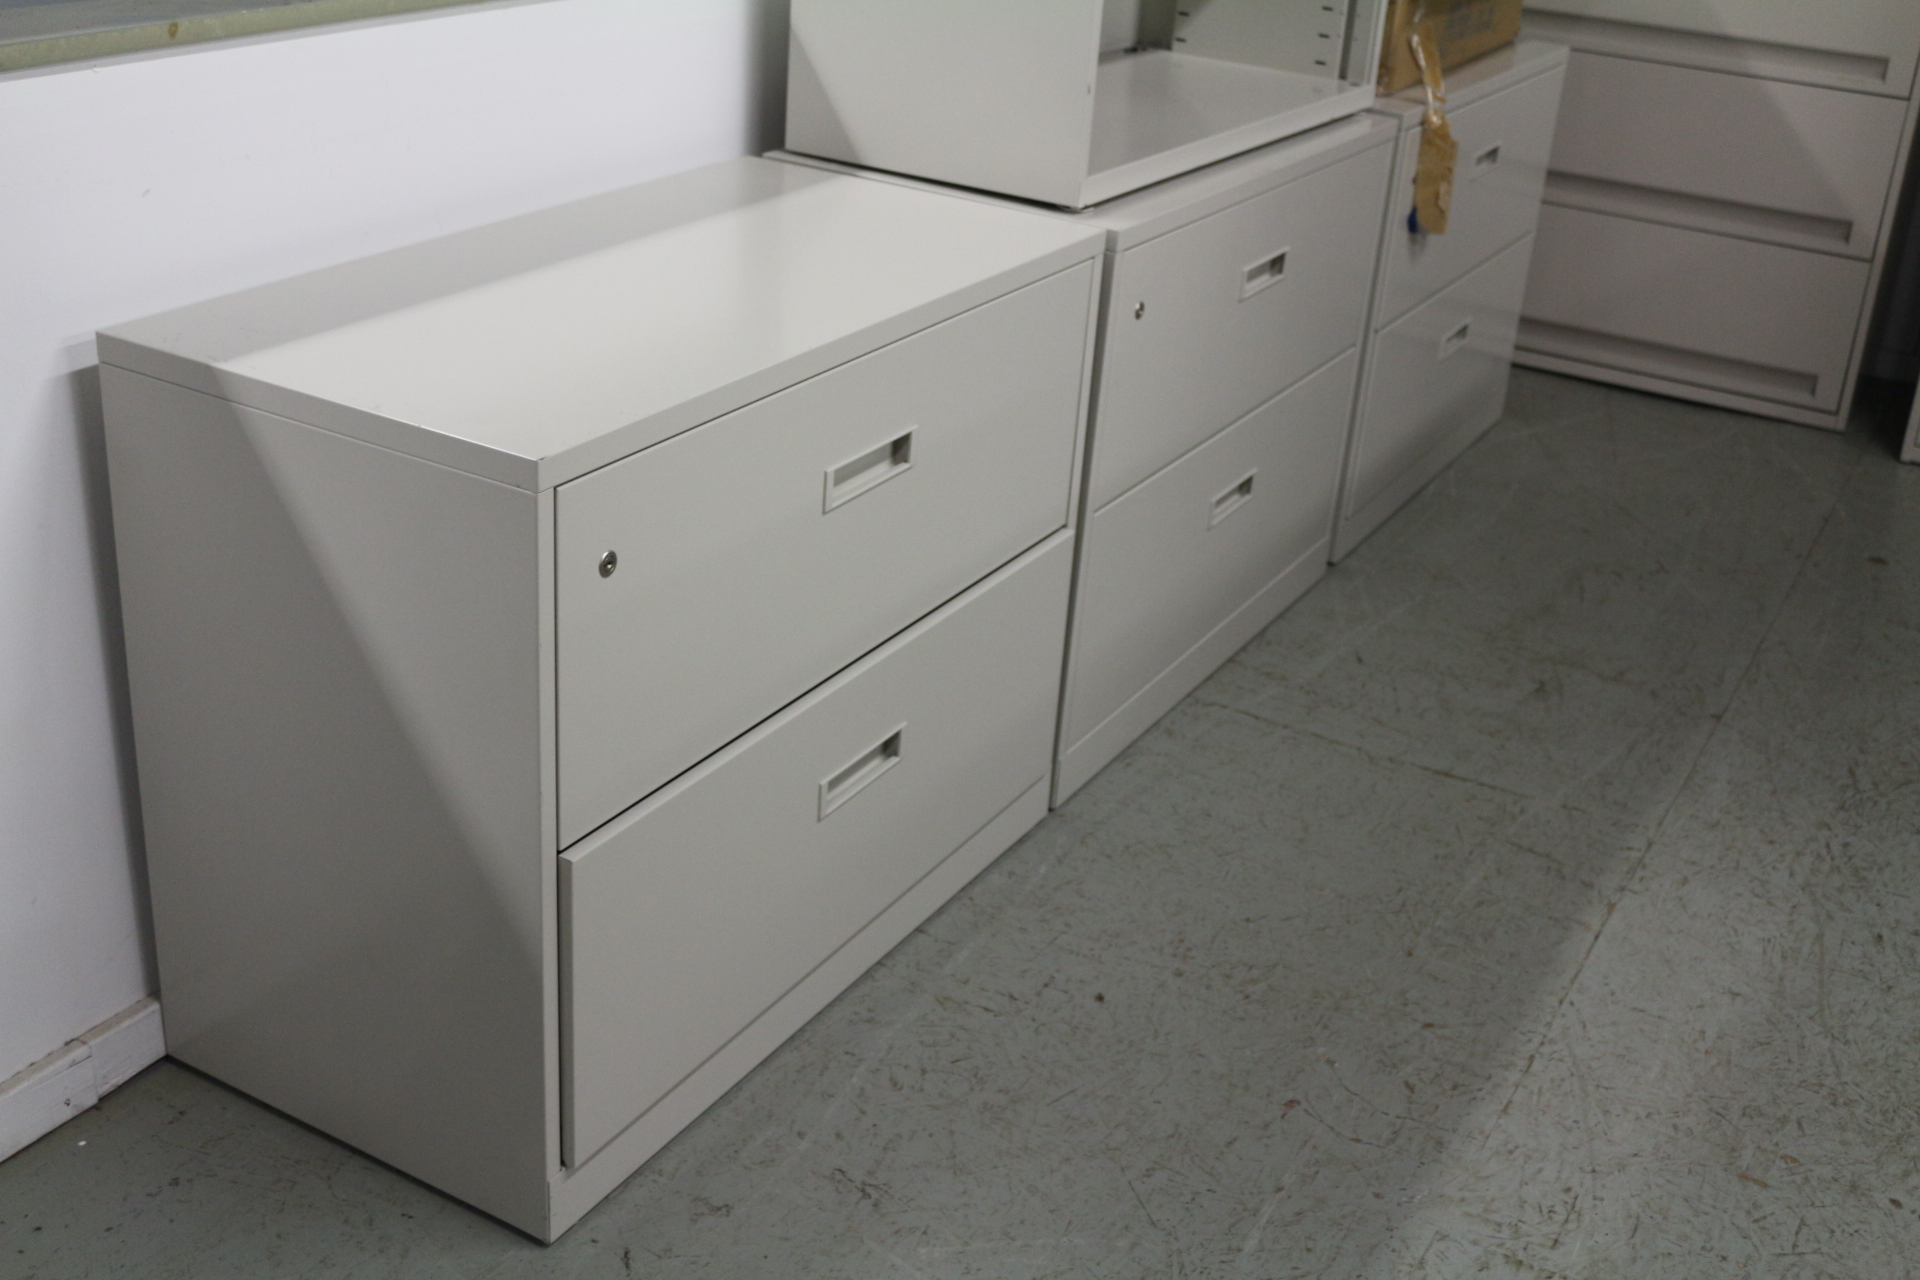 Steelcase 2-Drawer Lateral File Cabinet